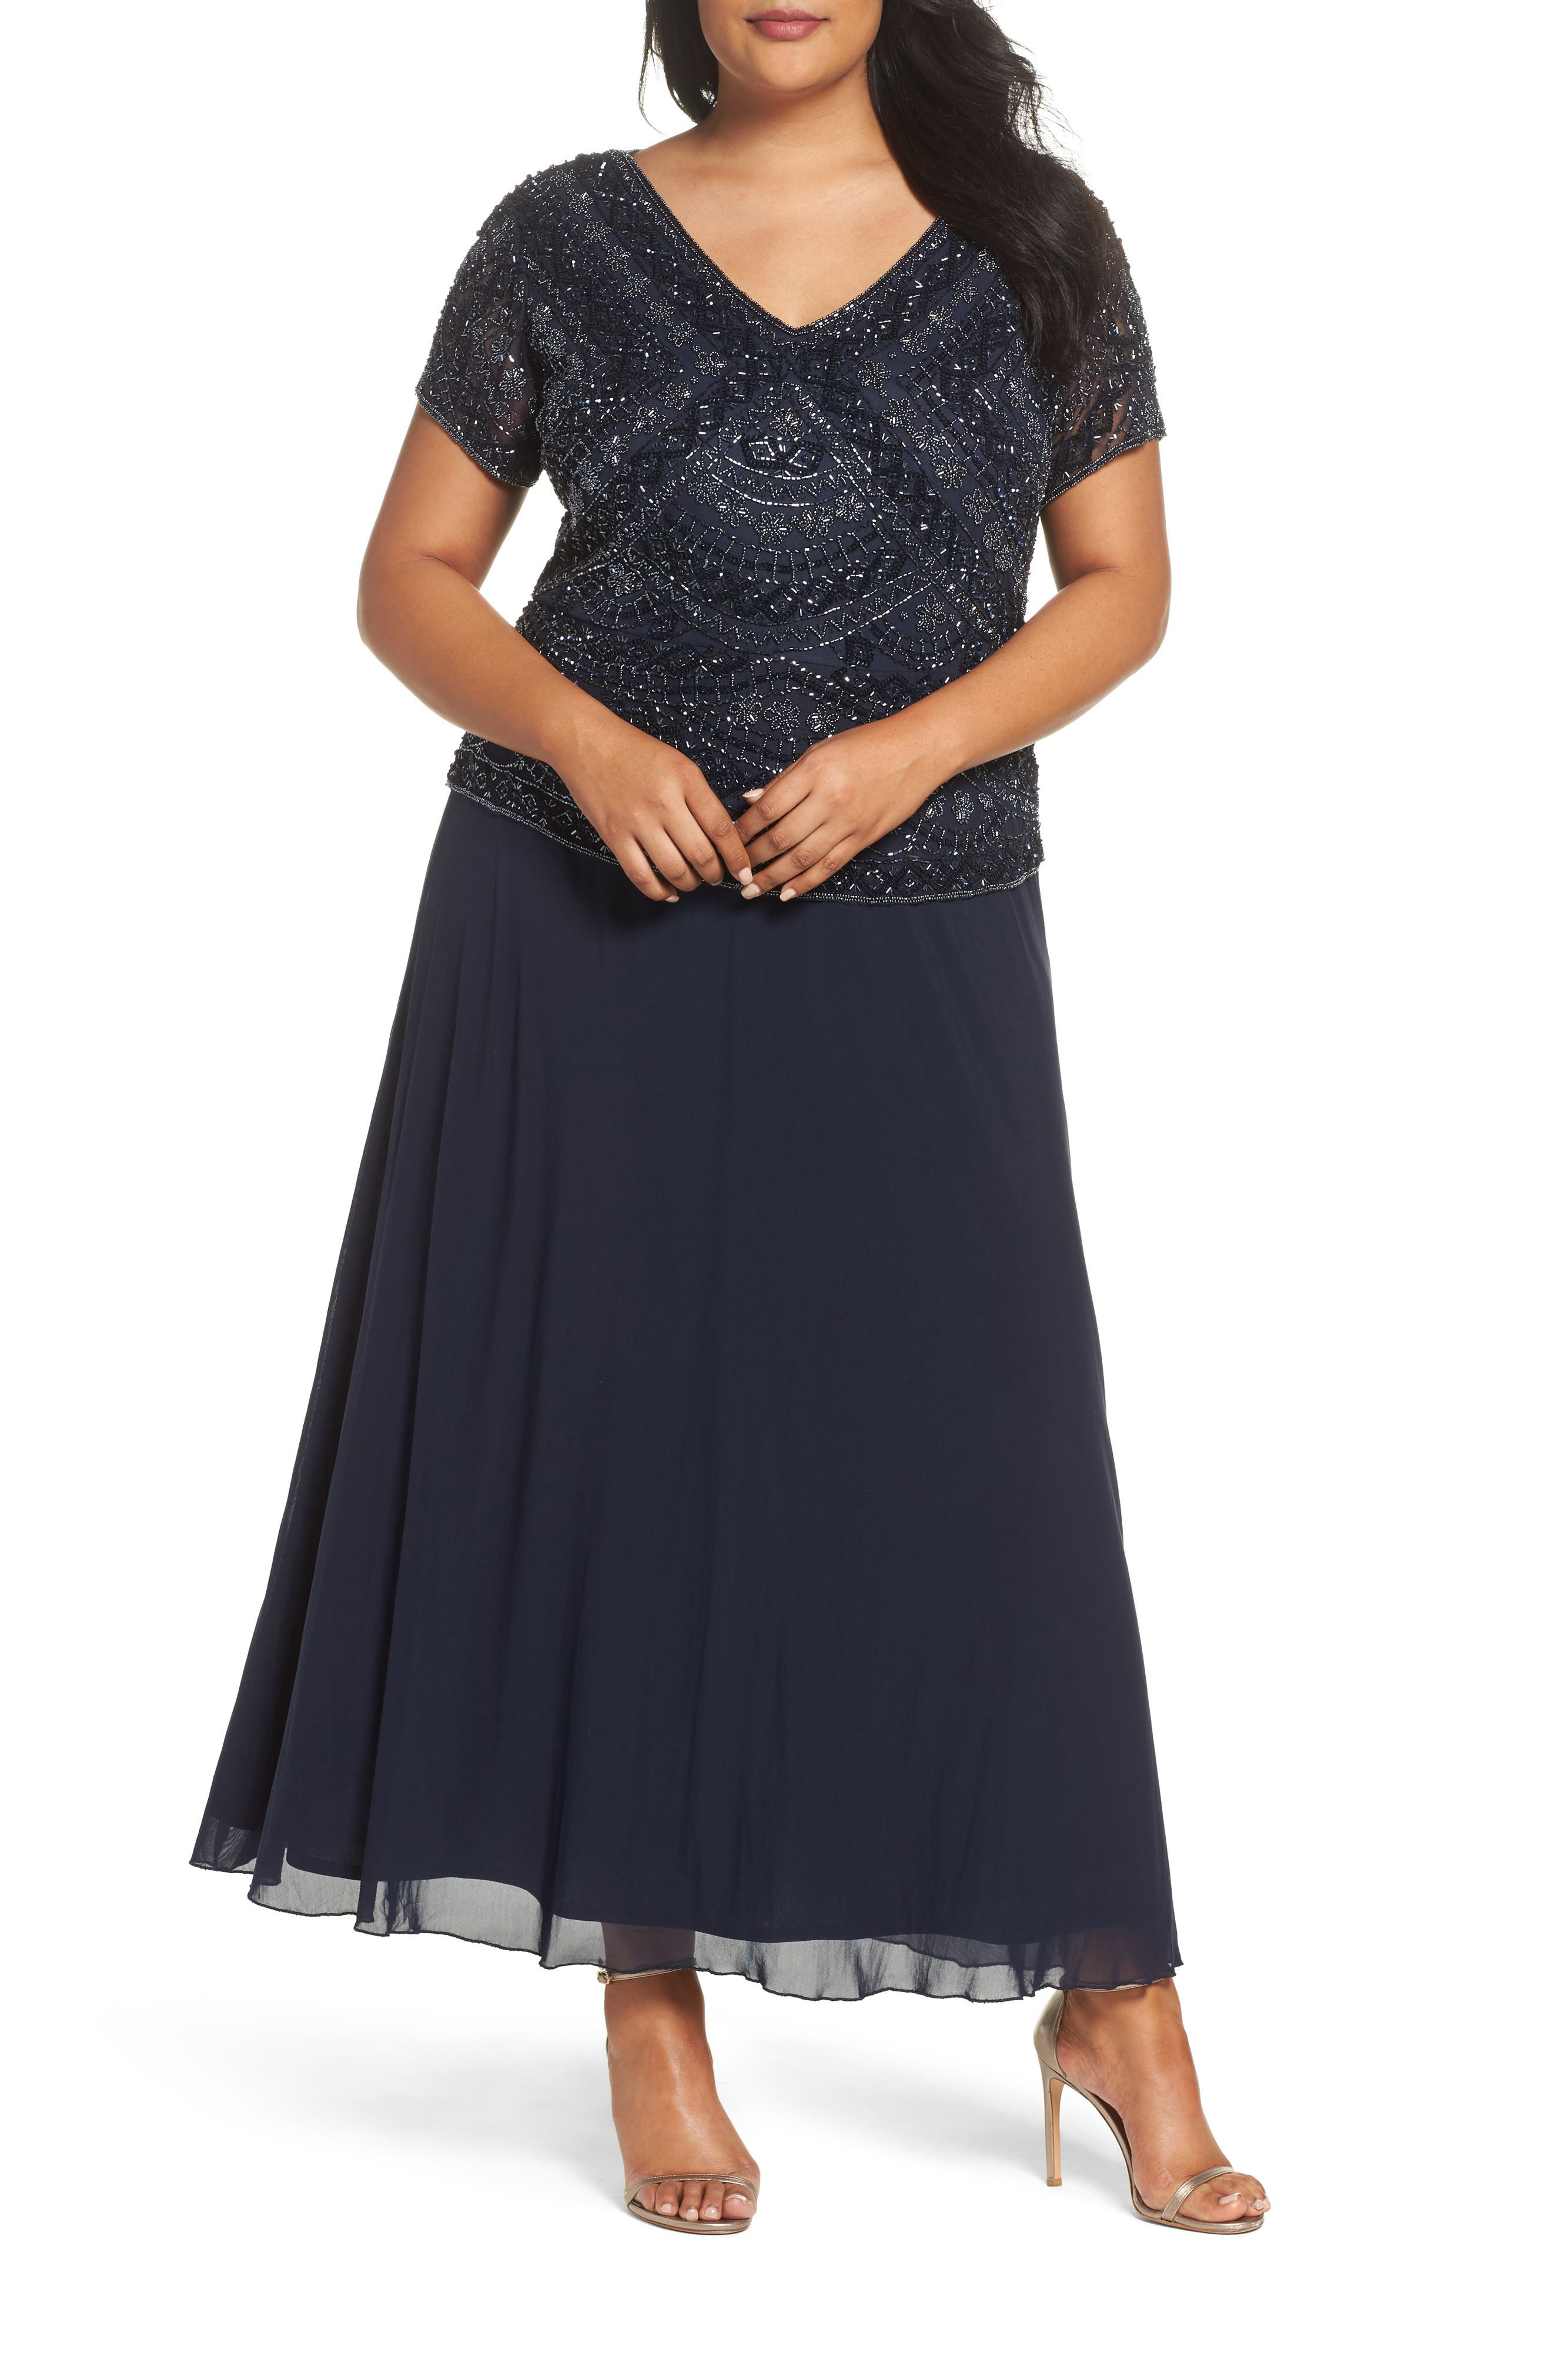 1940s Evening, Prom, Party, Formal, Ball Gowns Plus Size Womens Pisarro Nights Beaded Mock Two-Piece Gown Size 24W - Blue $238.00 AT vintagedancer.com